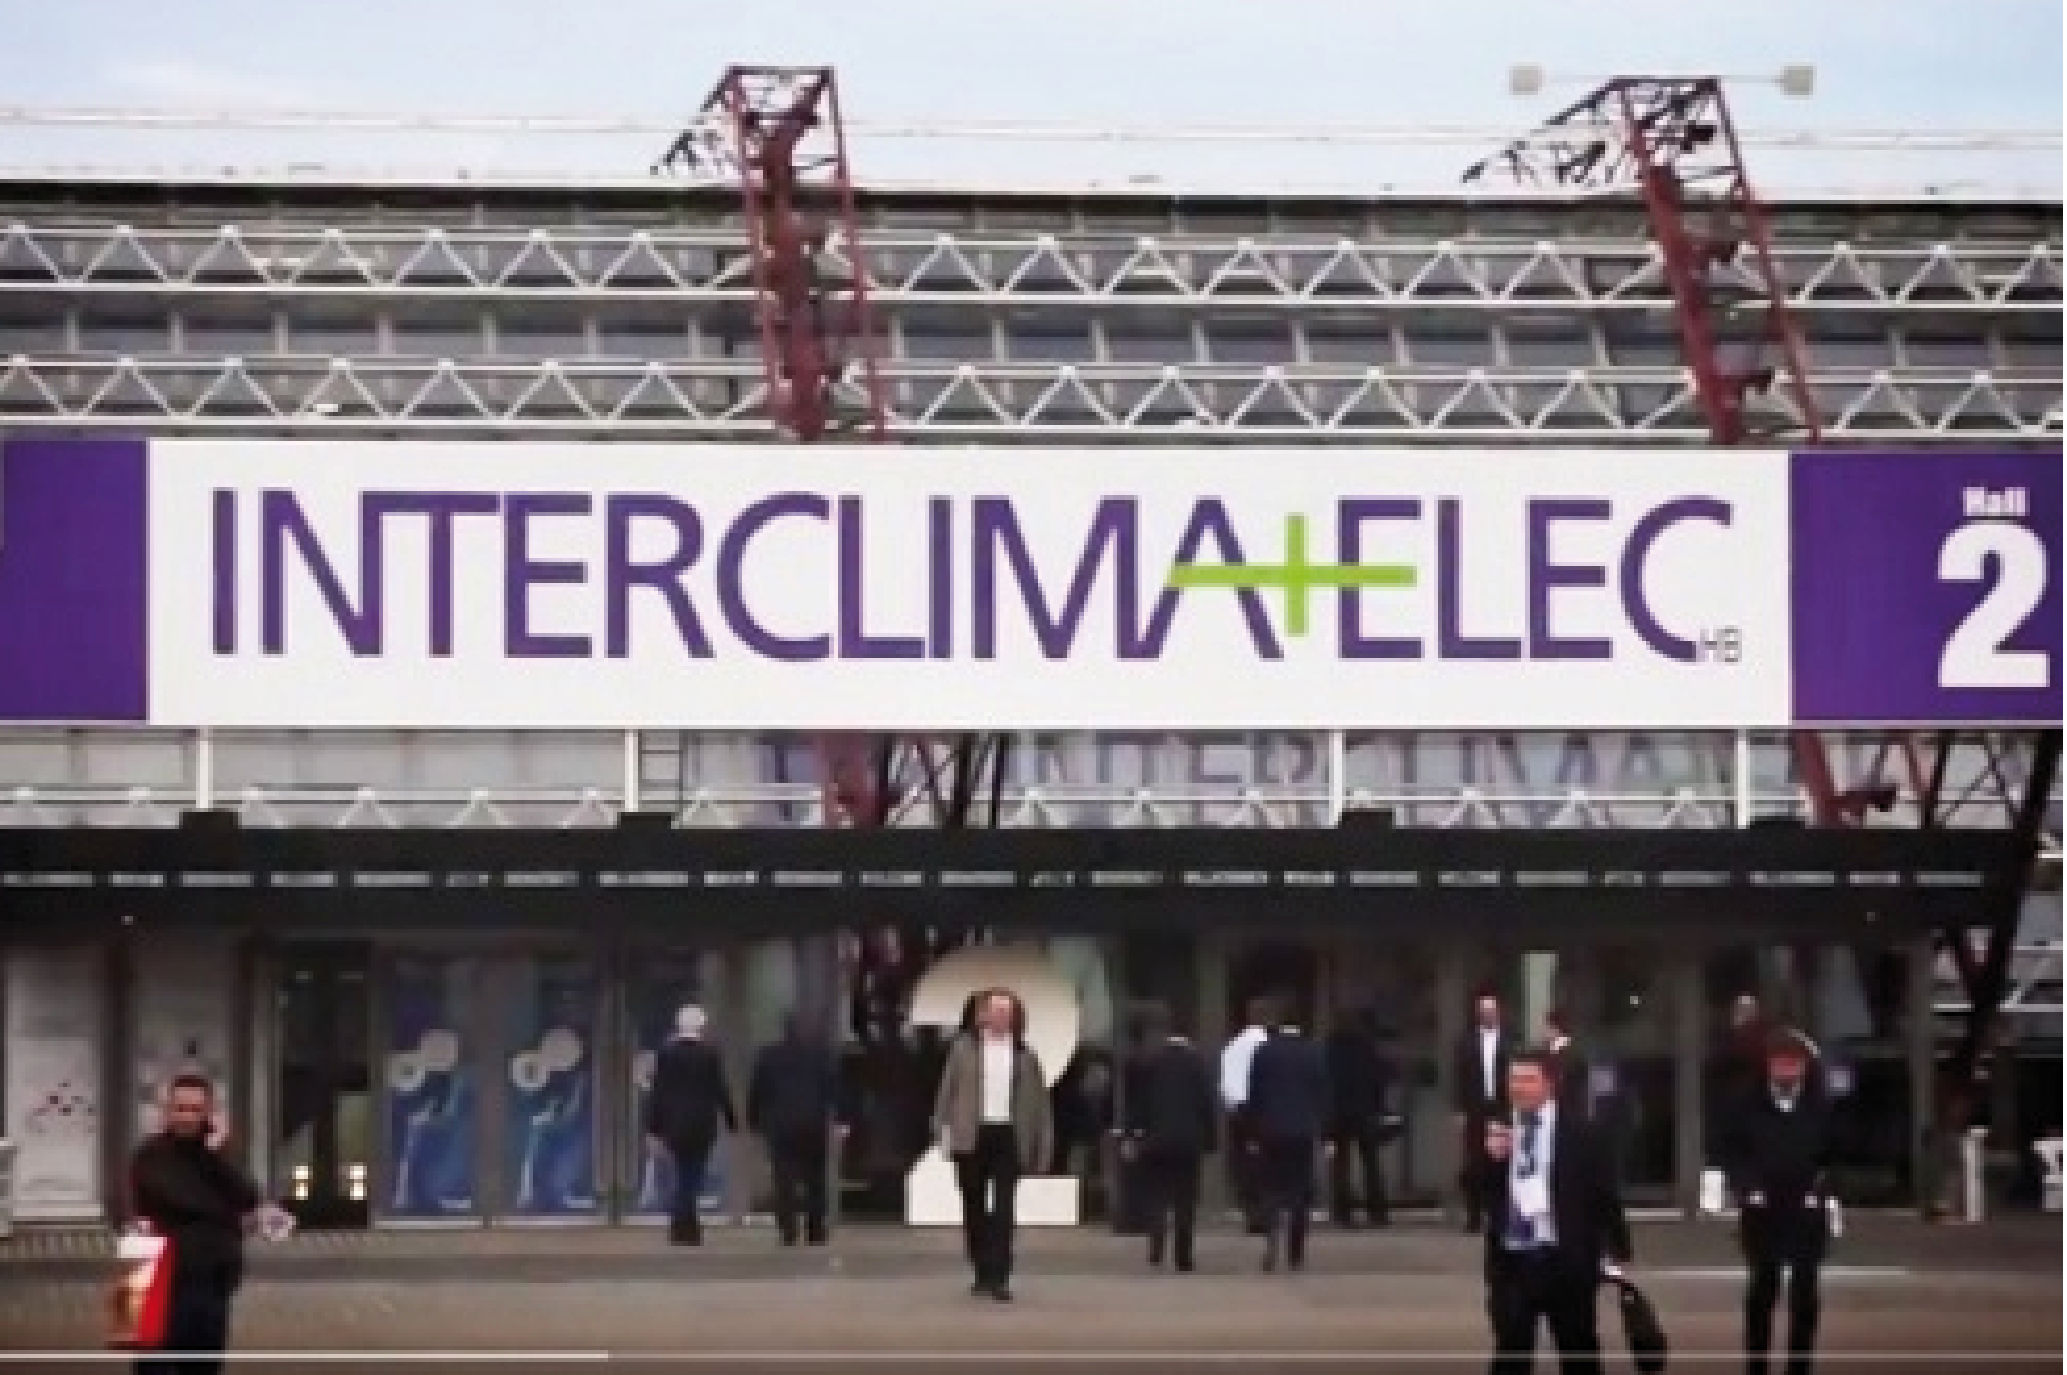 INTERCLIMA+ELEC, Paris